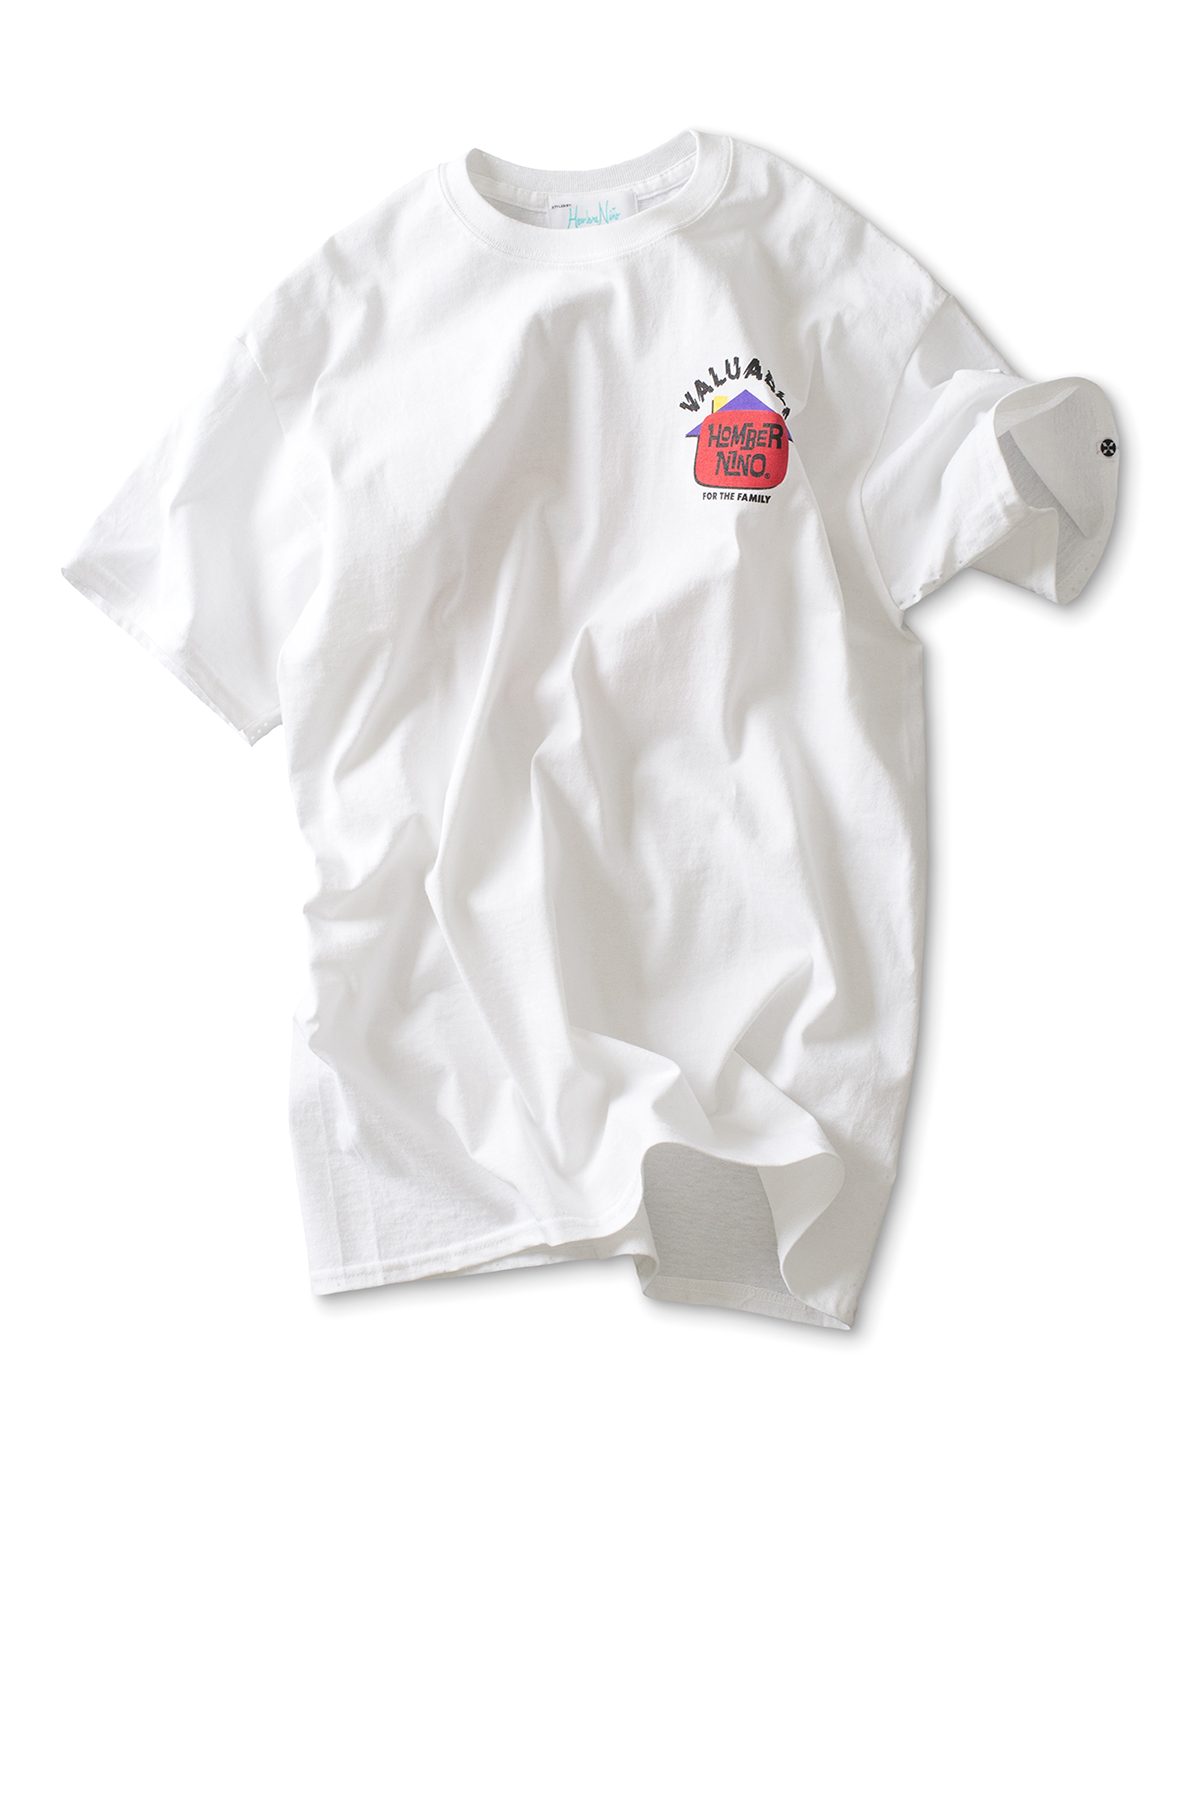 Hombre Niño : S/S Print Tee Valuable (White)